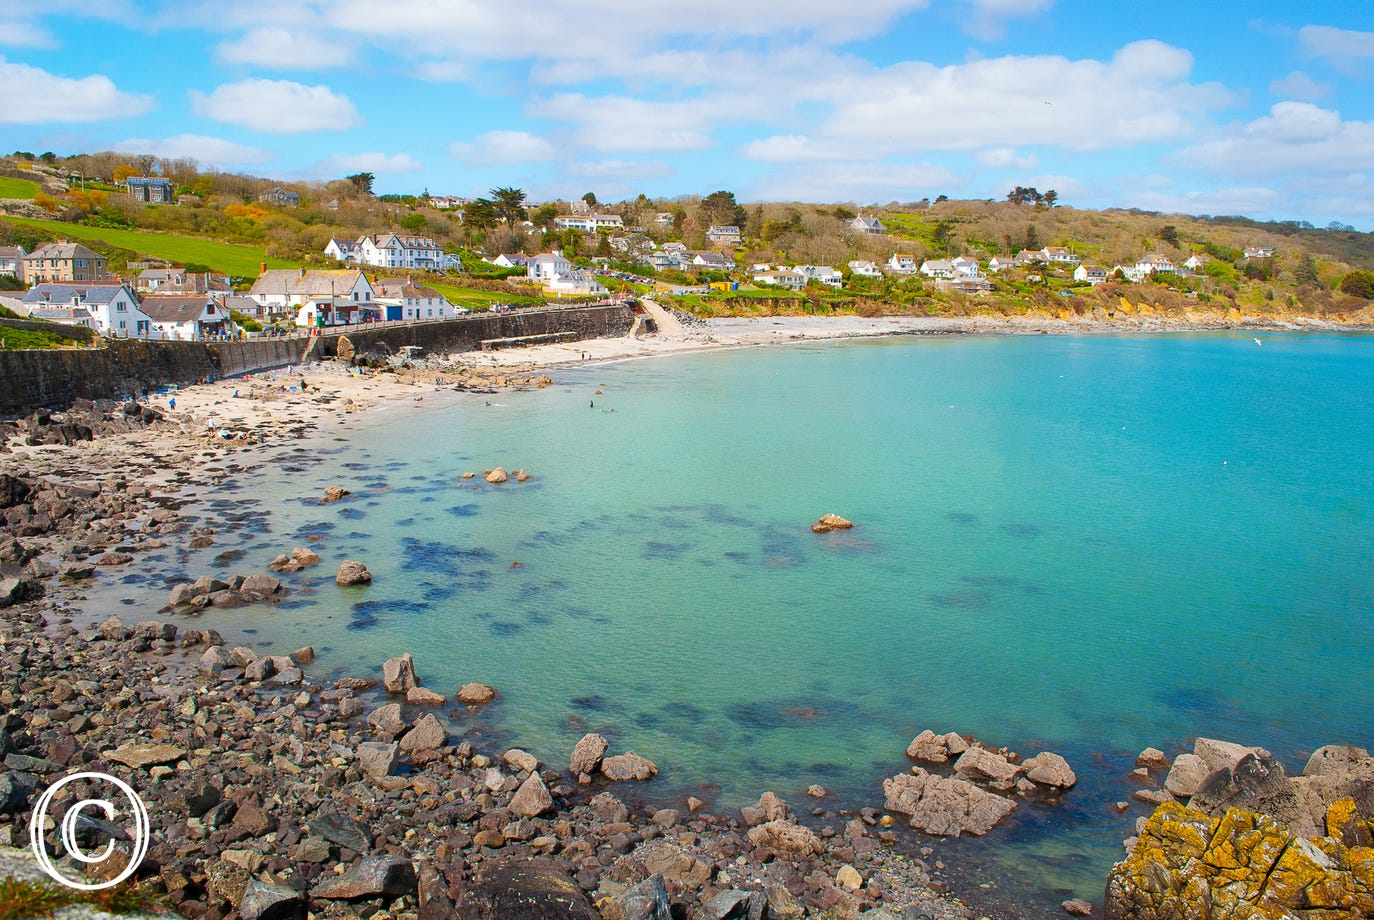 Coverack only a 5 minute drive from Tremenhere Barn.